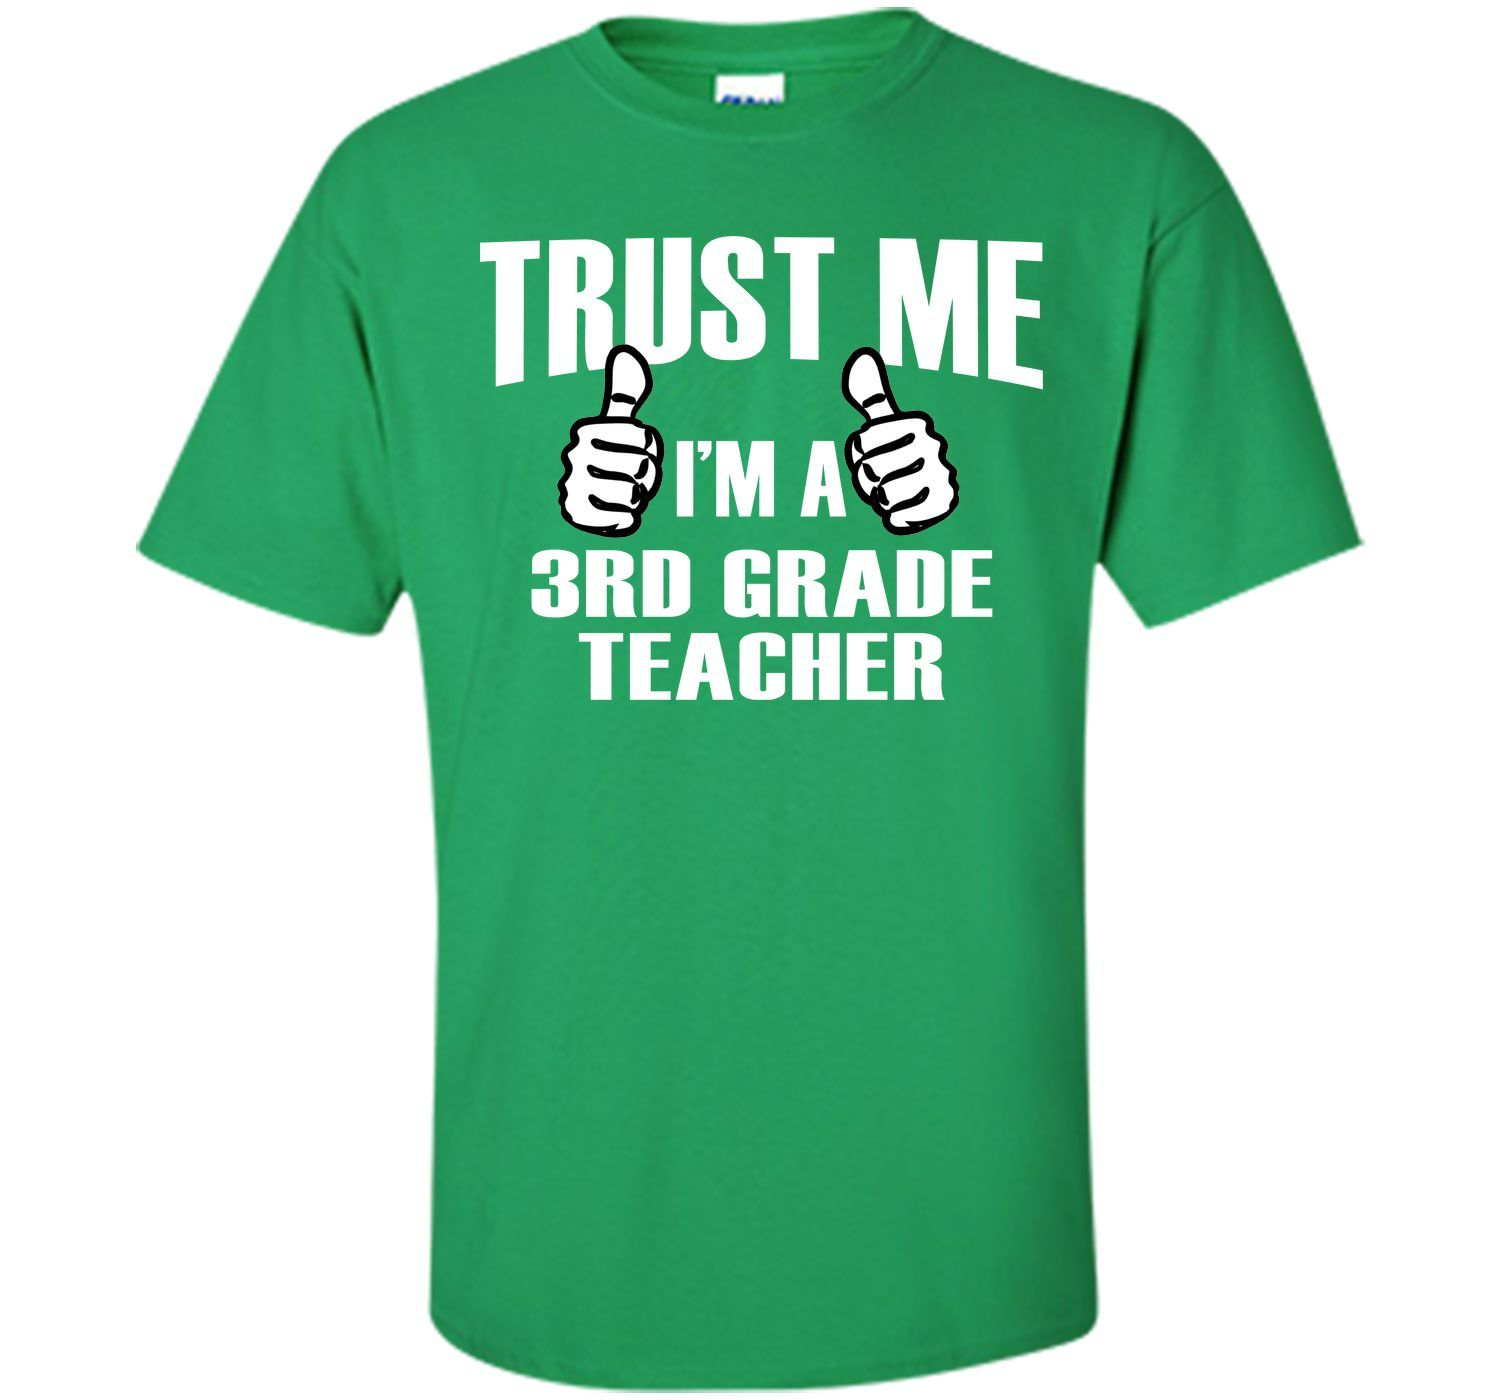 Trust Me I'm A 3rd Grade Teacher - Tshirts & Accessories T-Shirt